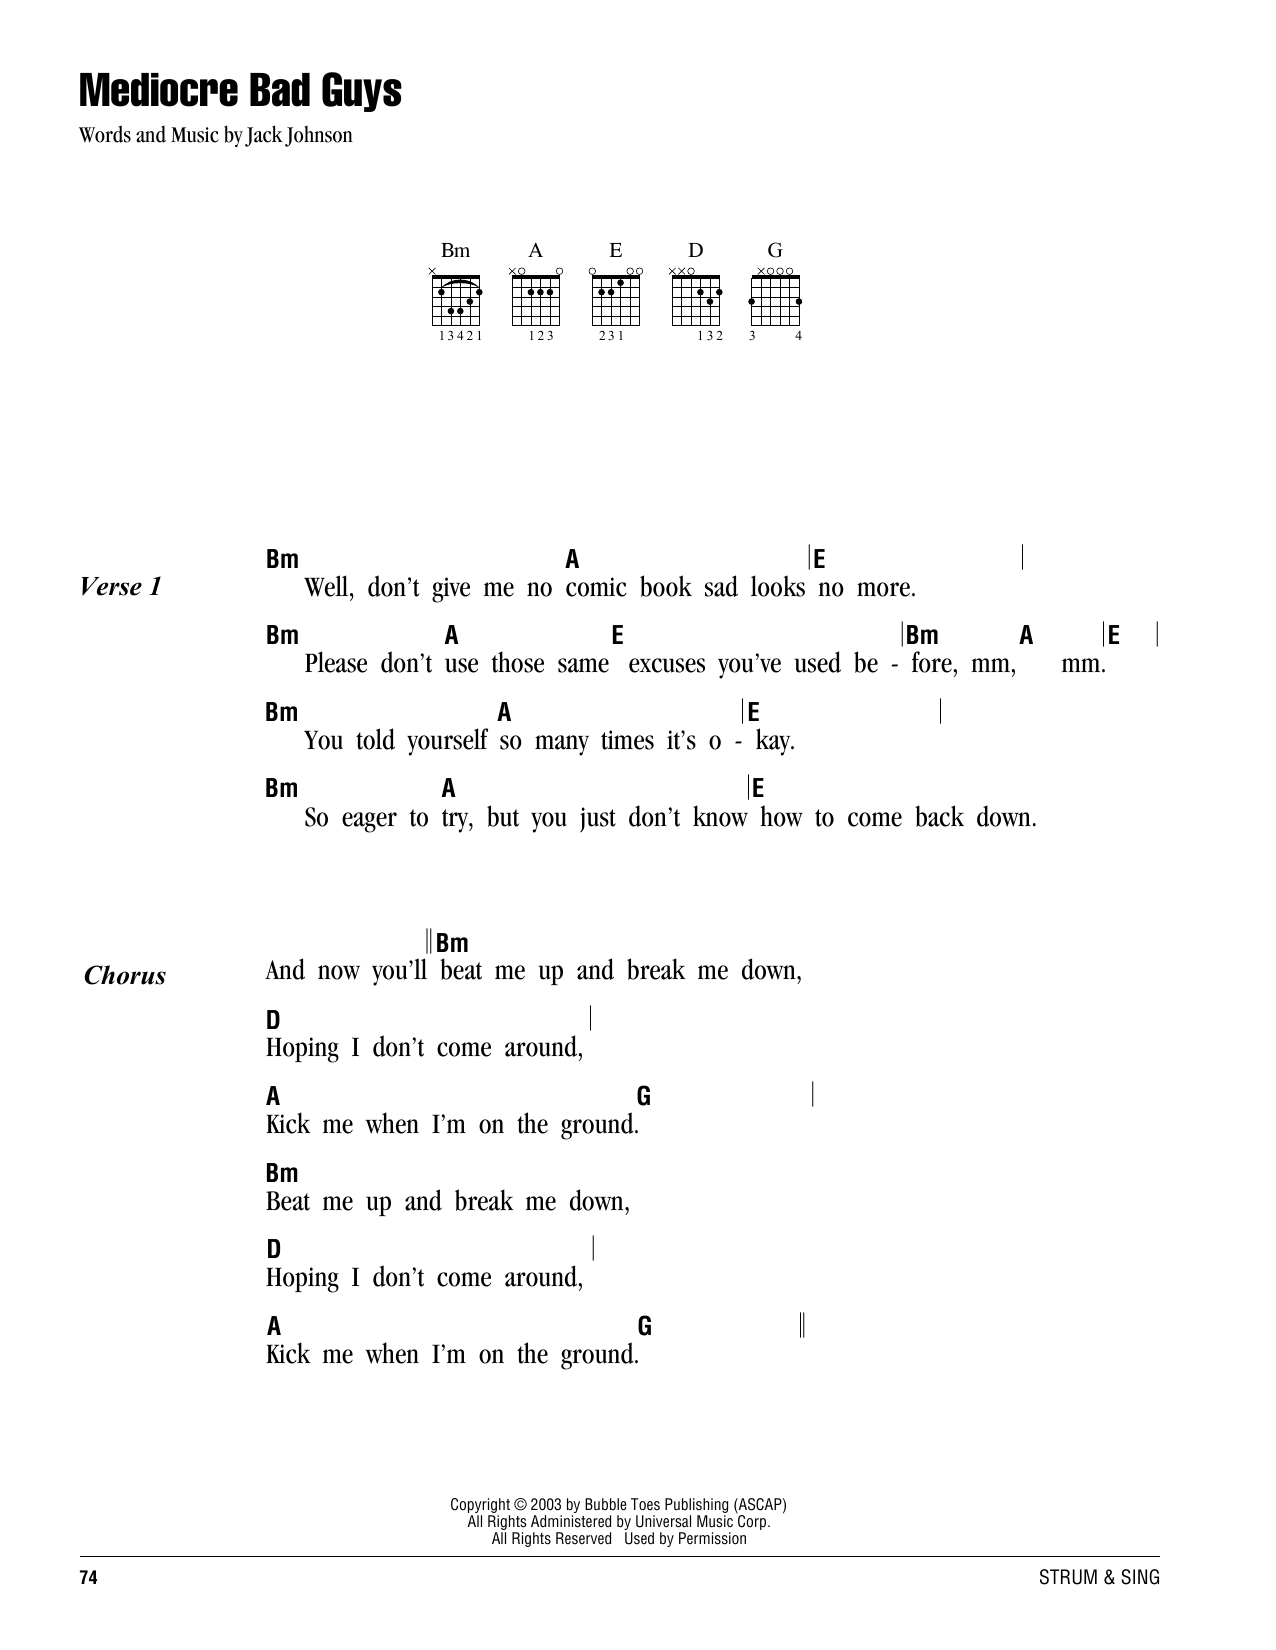 Bad Guy Set It Off Chords Mediocre Bad Guys By Jack Johnson Guitar Chords Lyrics